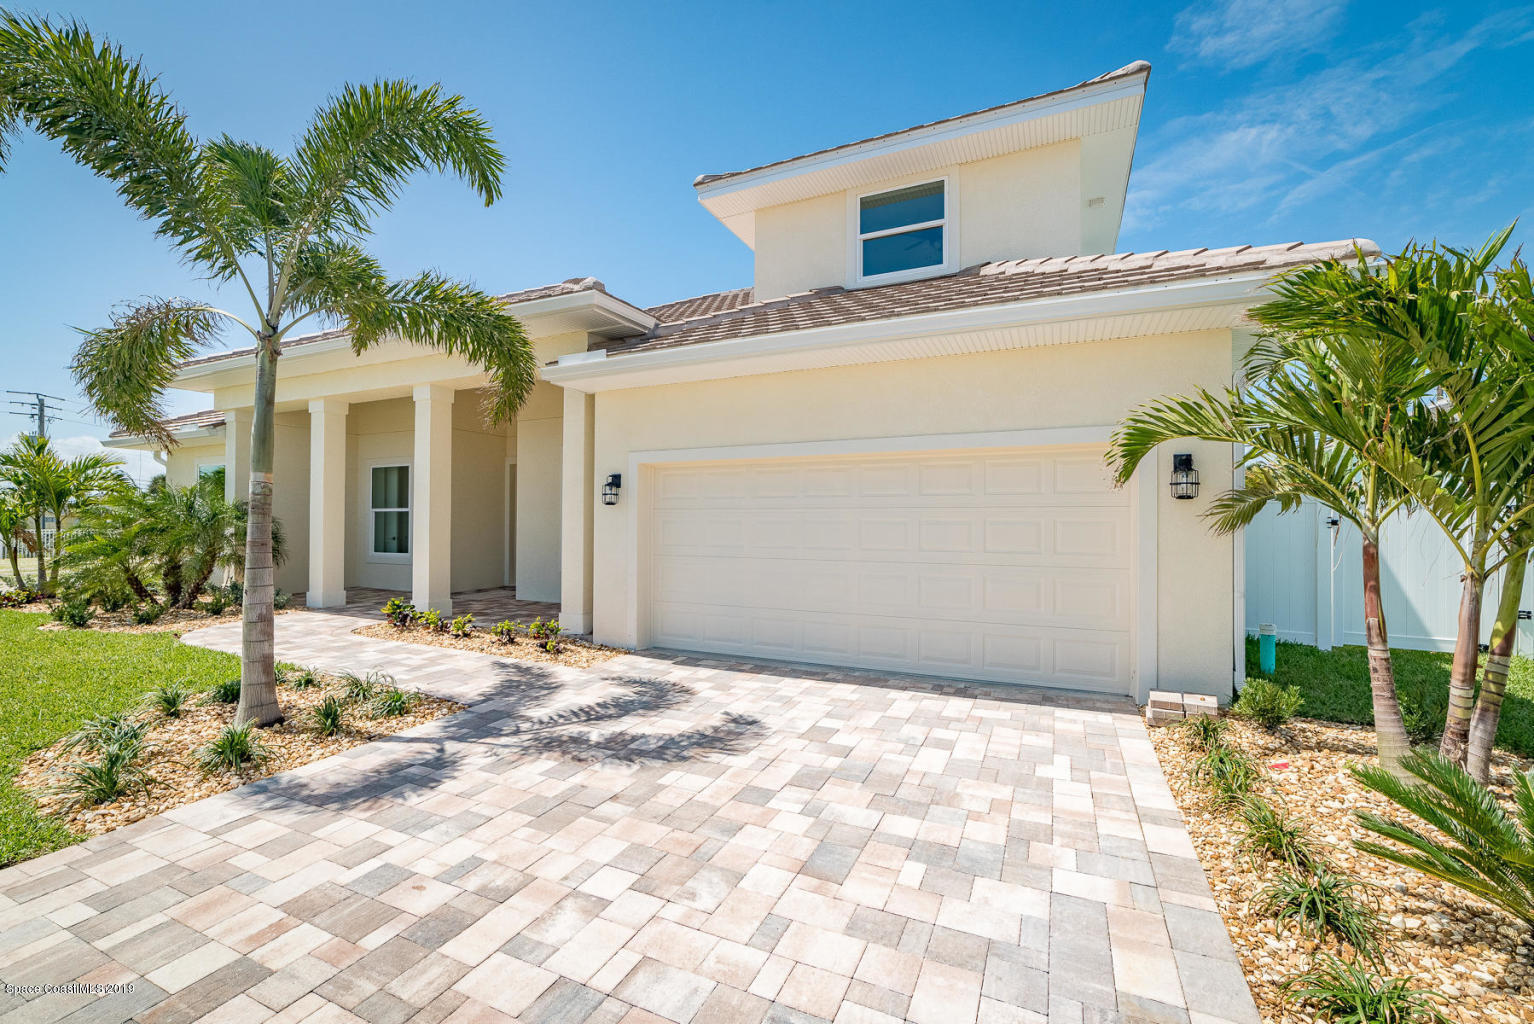 Multi-Family Homes for Sale at 120 Enclave Indian Harbour Beach, Florida 32937 United States